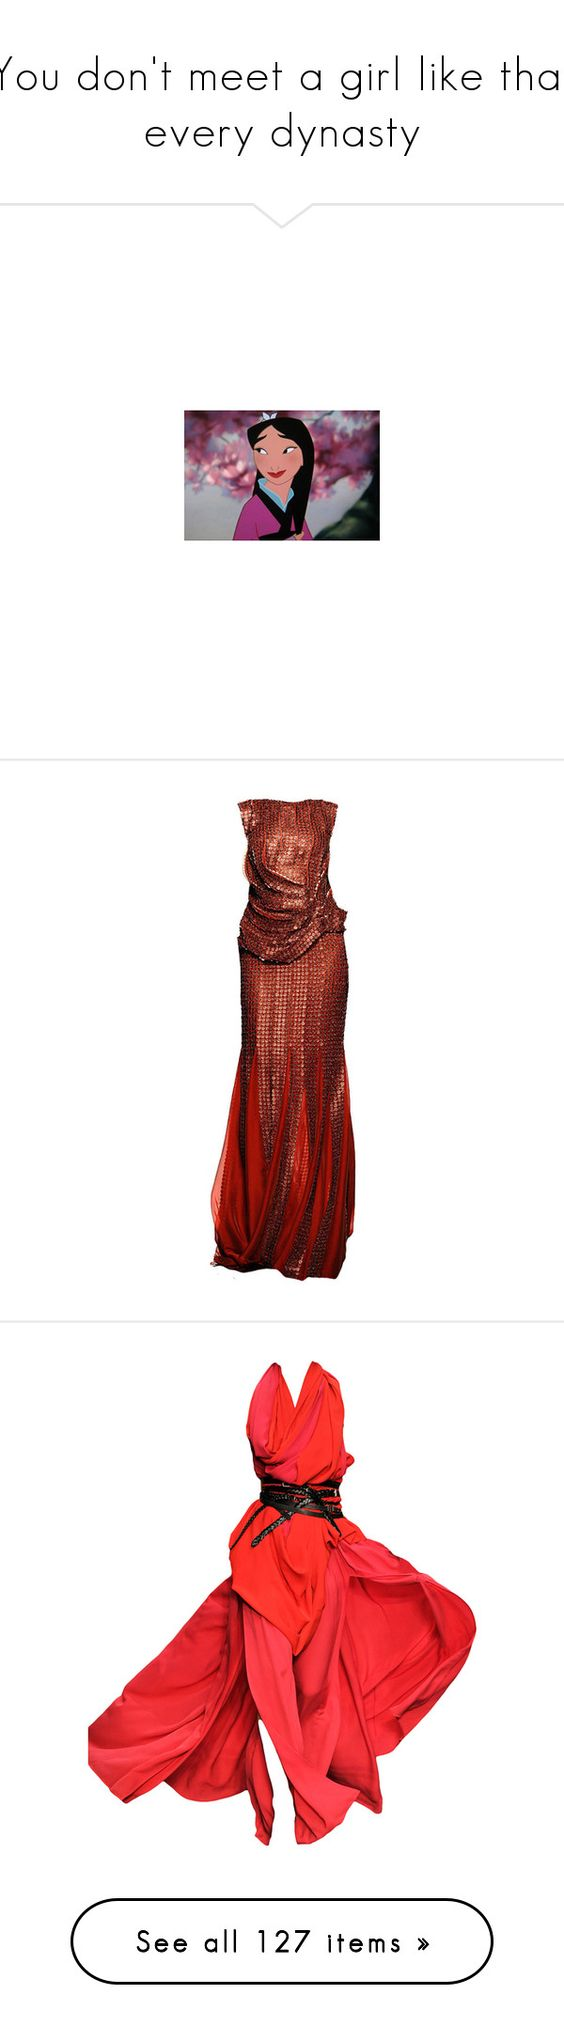 """""""You don't meet a girl like that every dynasty"""" by camimany ❤ liked on Polyvore featuring disney, mulan, disney pictures, dresses, gowns, vestidos, long dresses, red evening dresses, red gown and long red evening dress"""